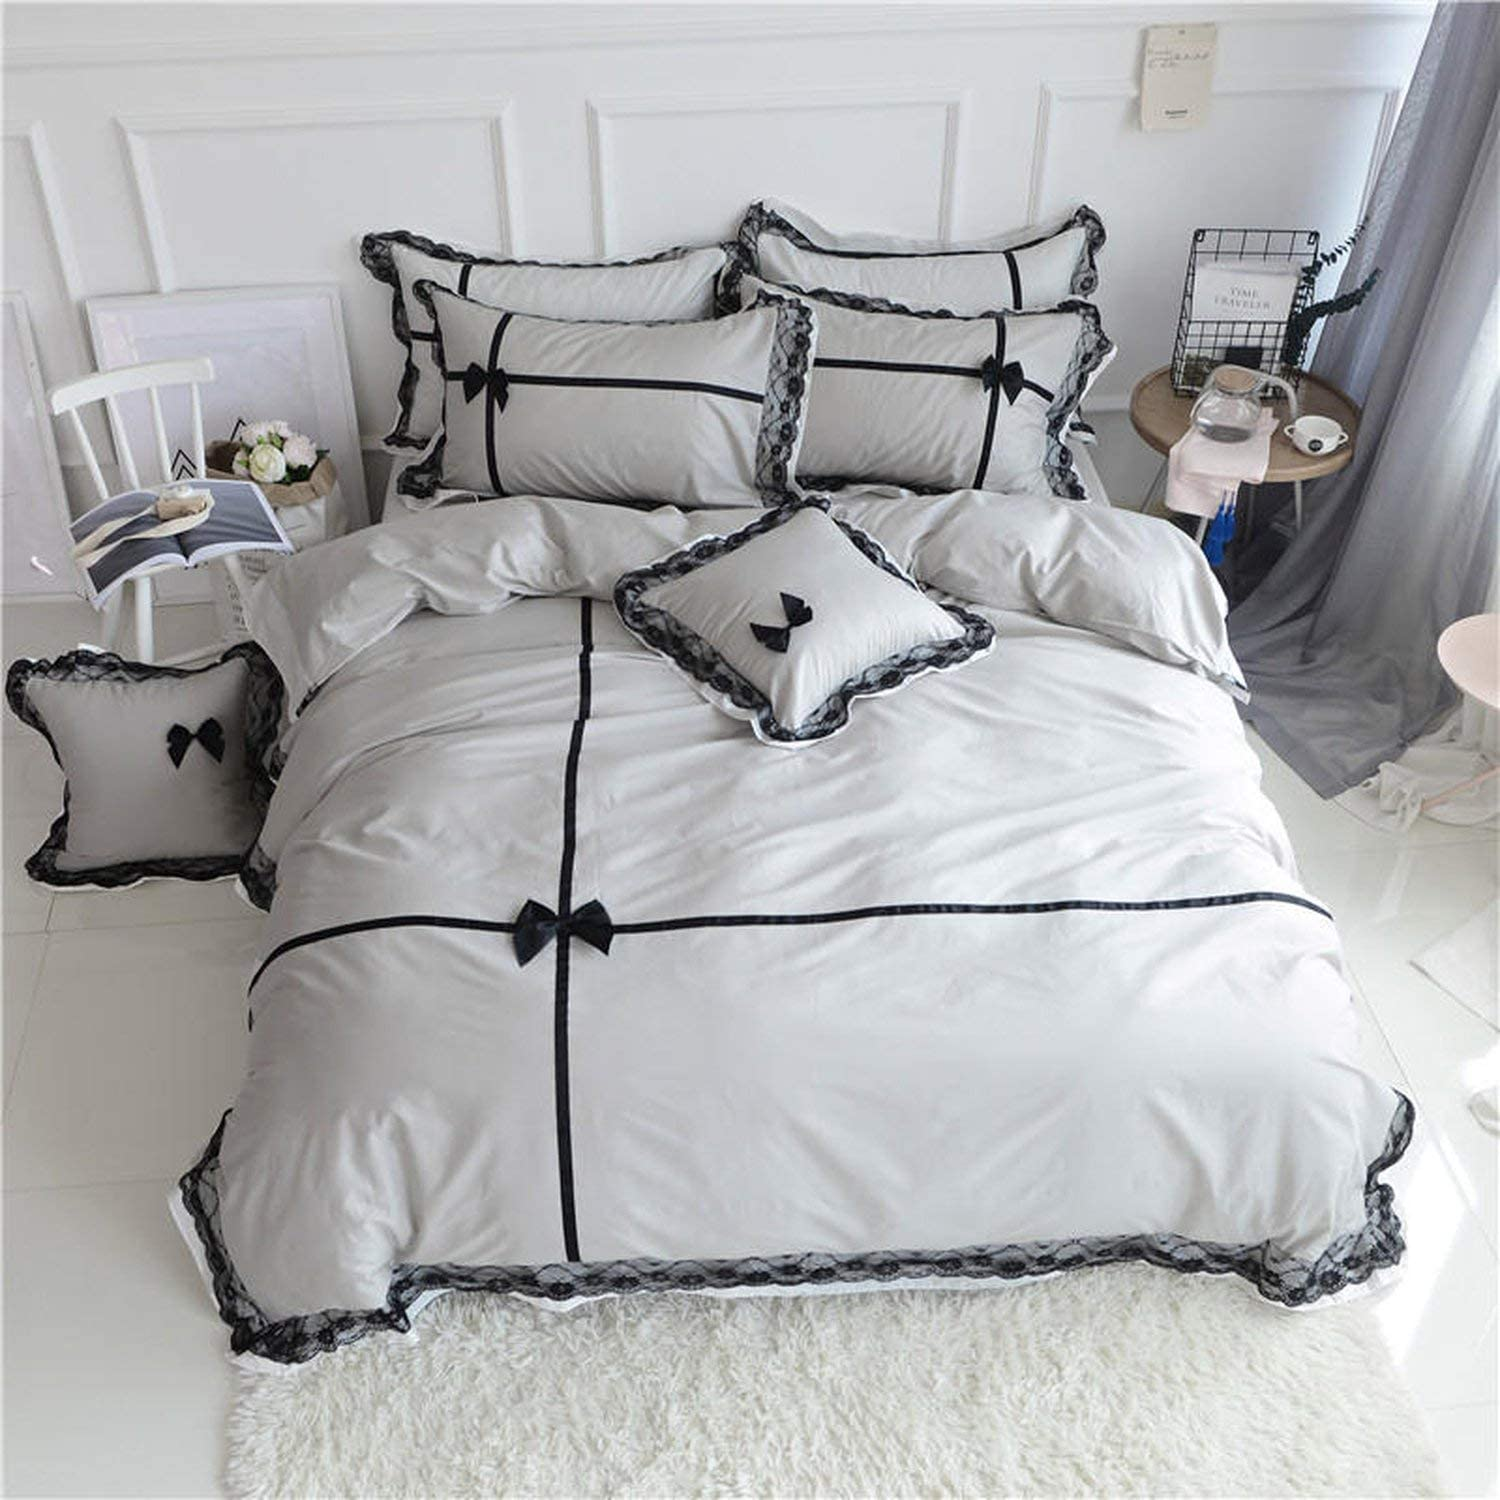 Athena White and Black 4-Piece 100/% Cotton Embroidered Duvet Cover//Comforter Set